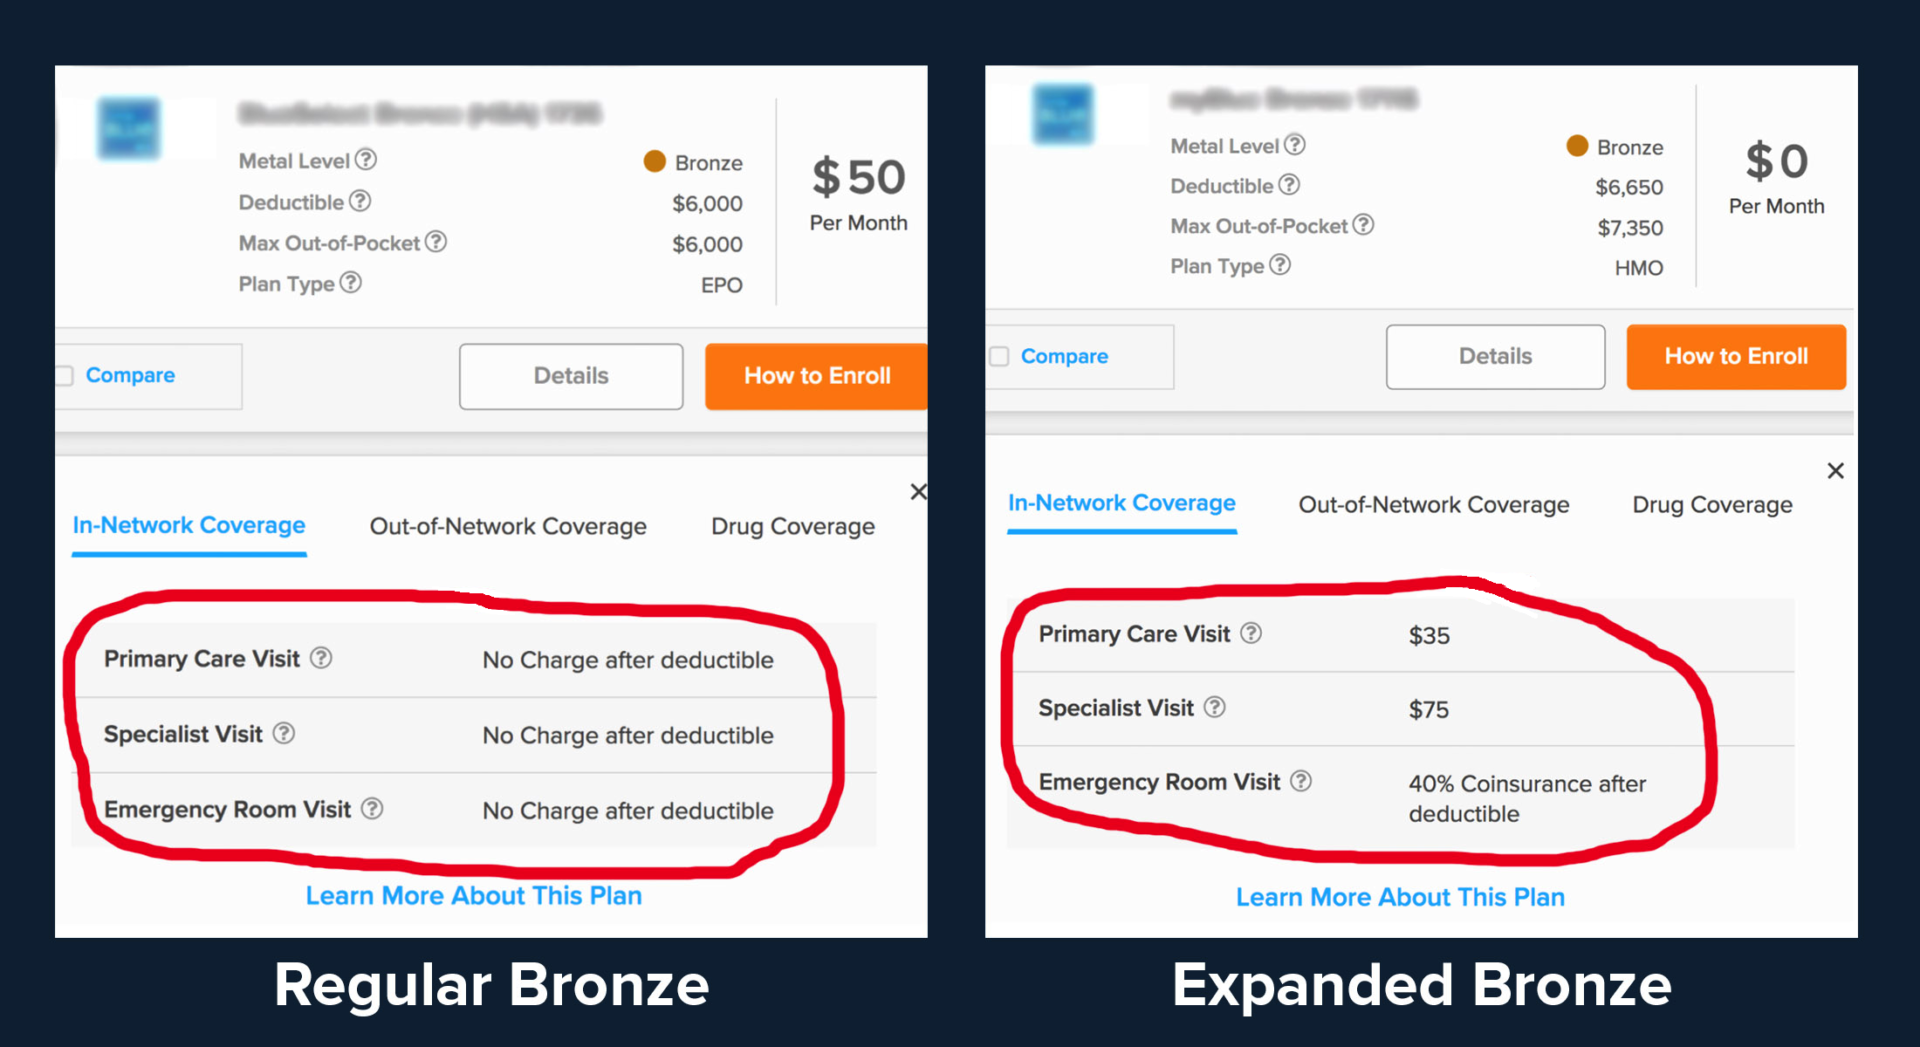 Regular Bronze Plan vs Expanded Bronze Plan